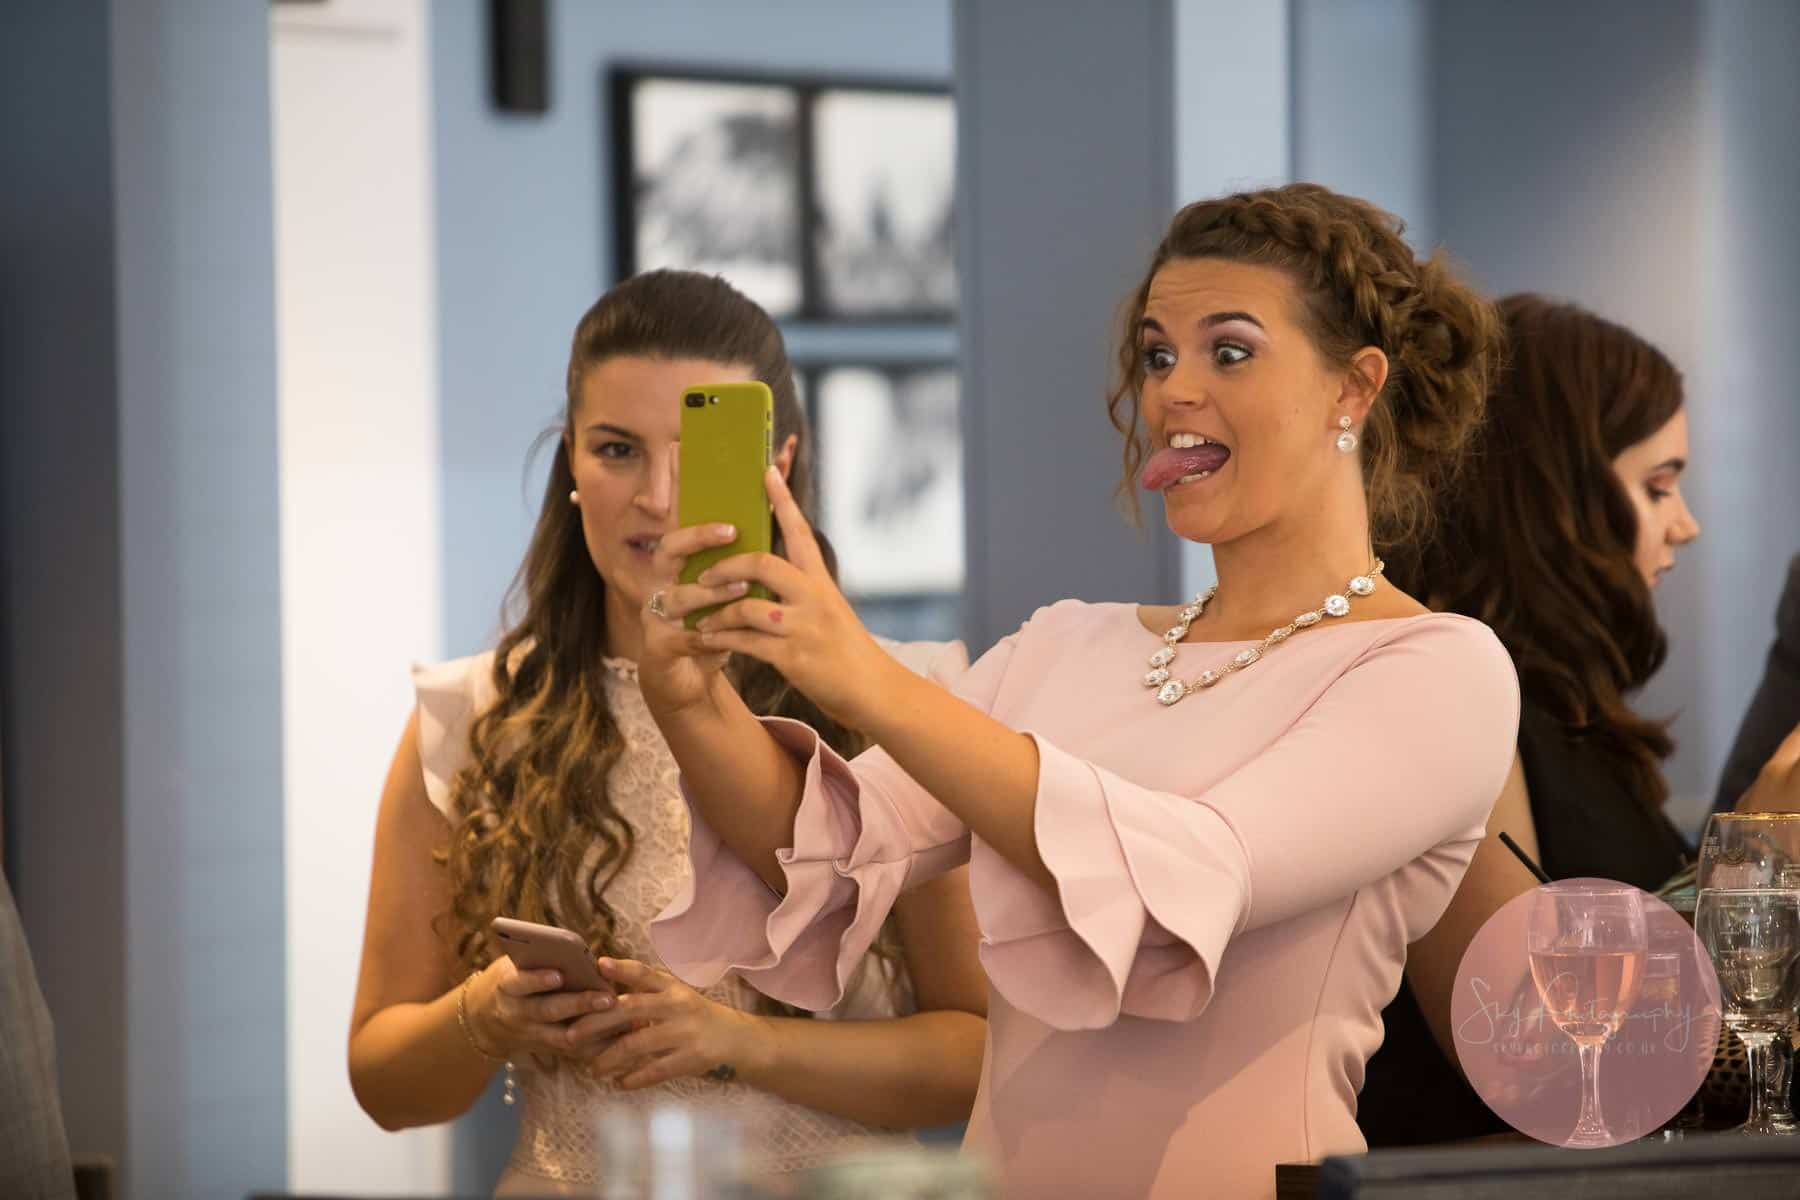 Wedding Guest pulling funny face selfies